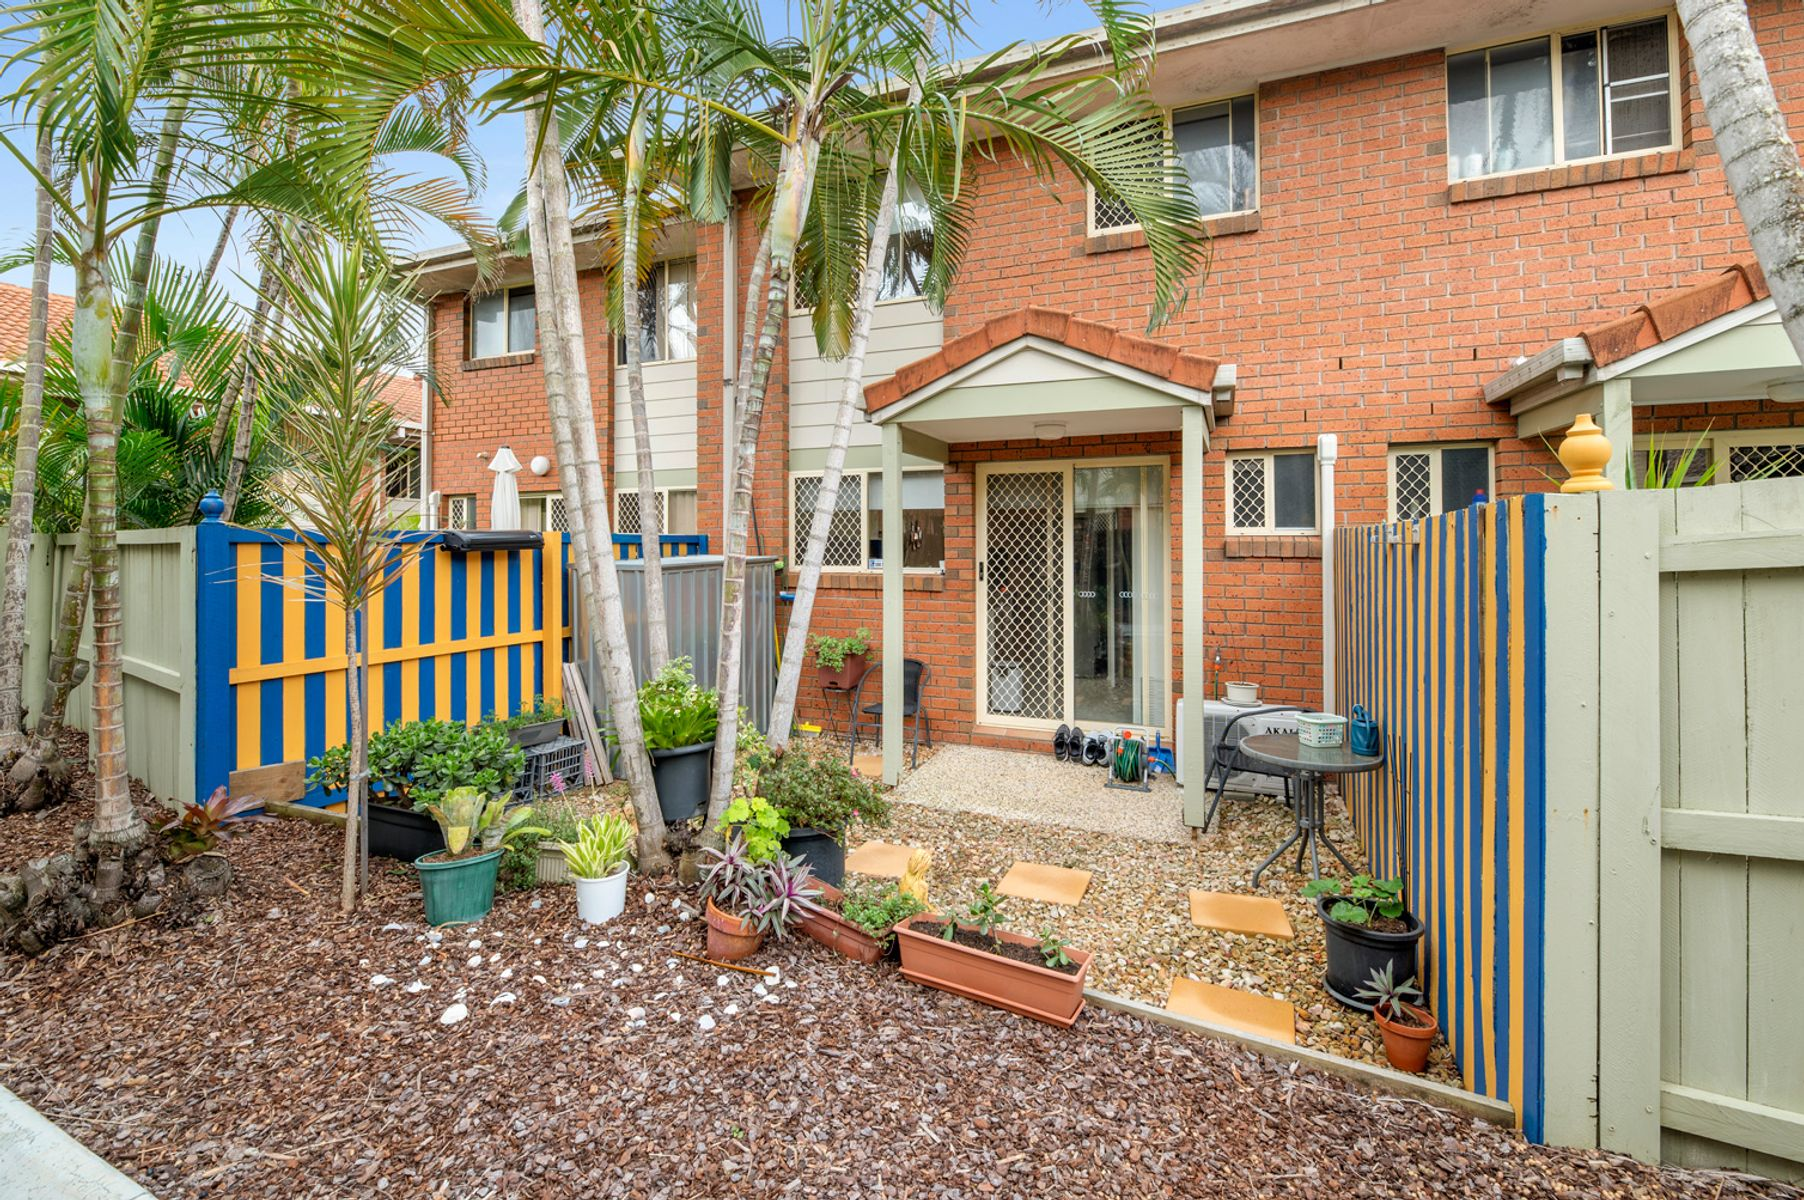 49/60 Whitby Street, Southport, QLD 4215